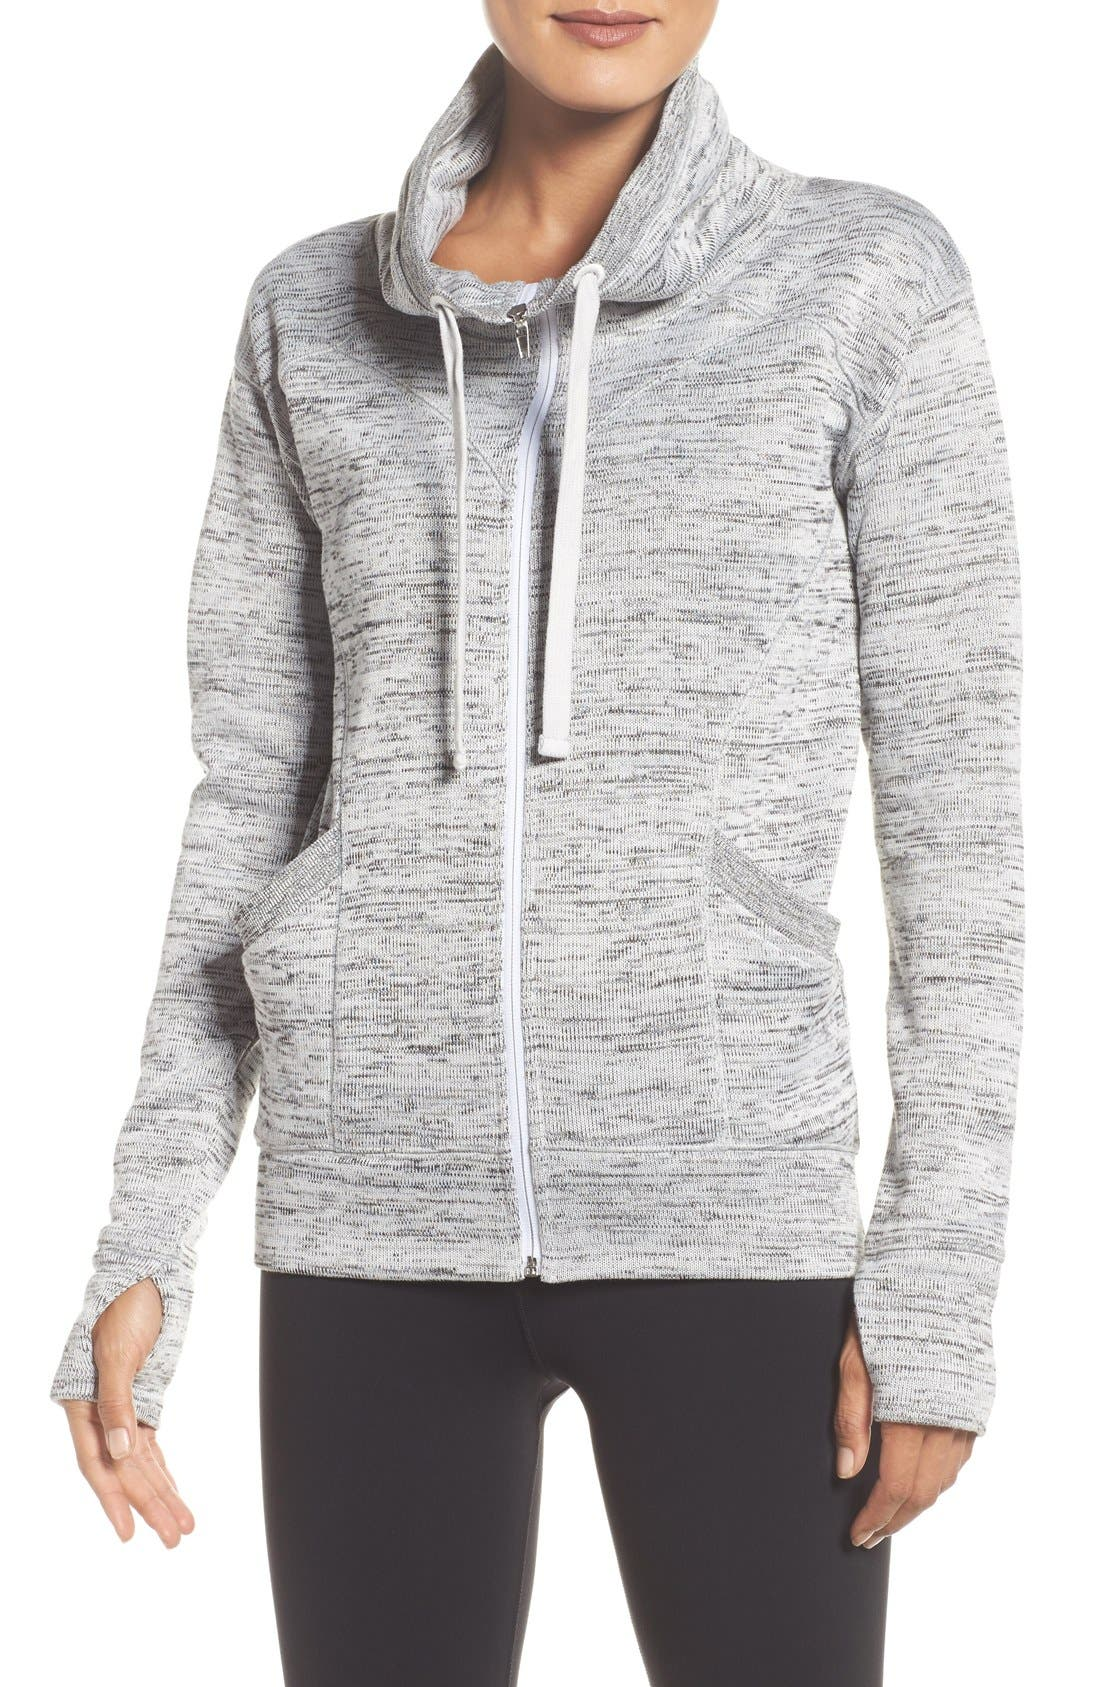 Alternate Image 1 Selected - Zella Cozy to the Core Sweater Jacket